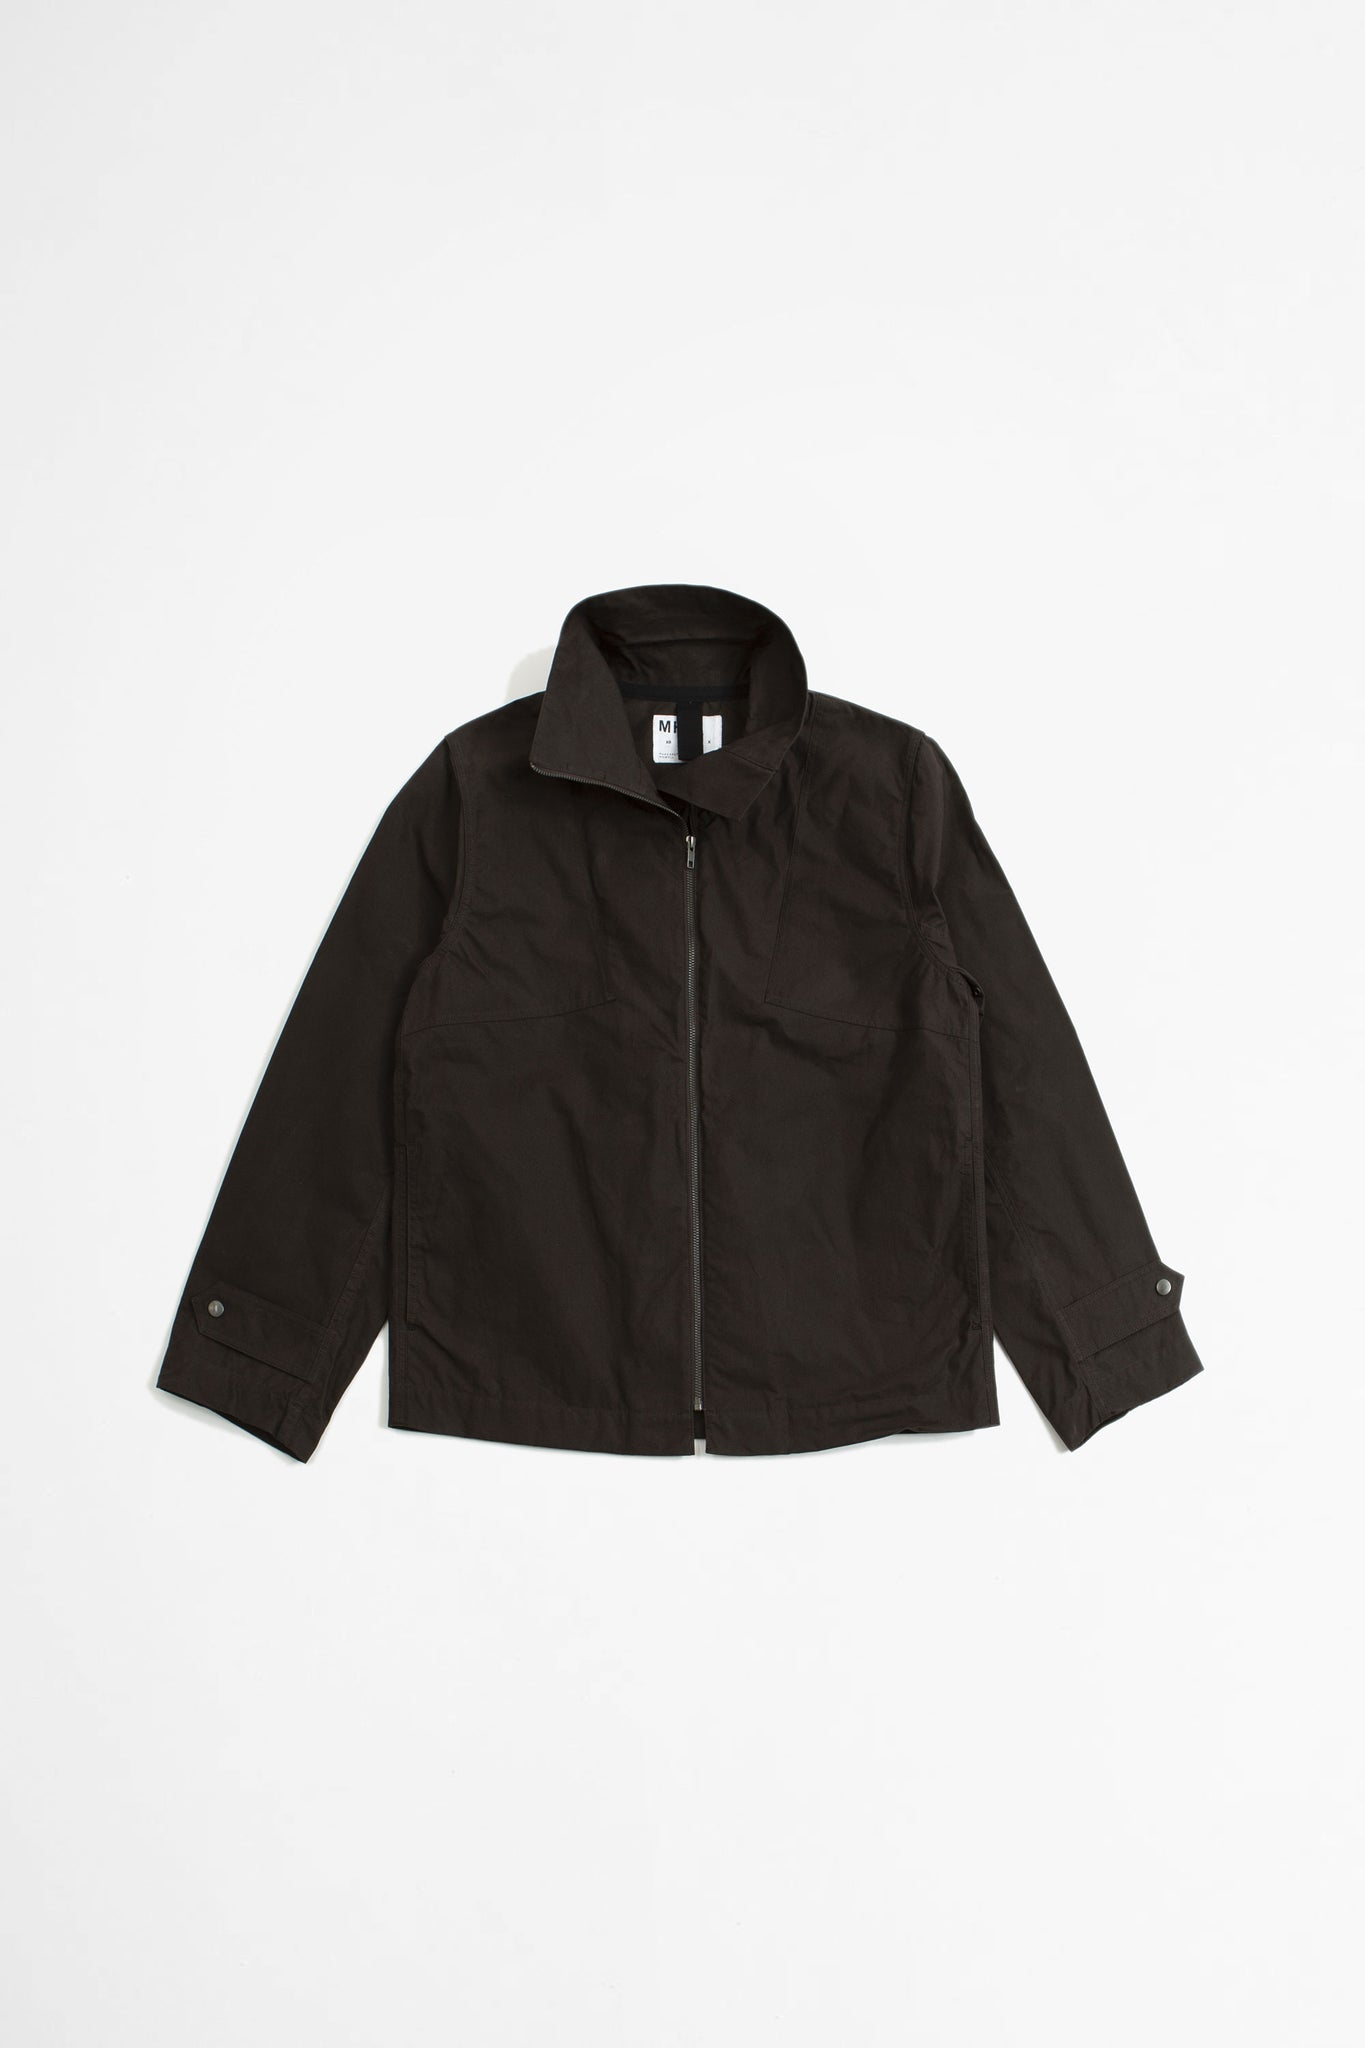 Rescue jacket washed waxed cotton carob